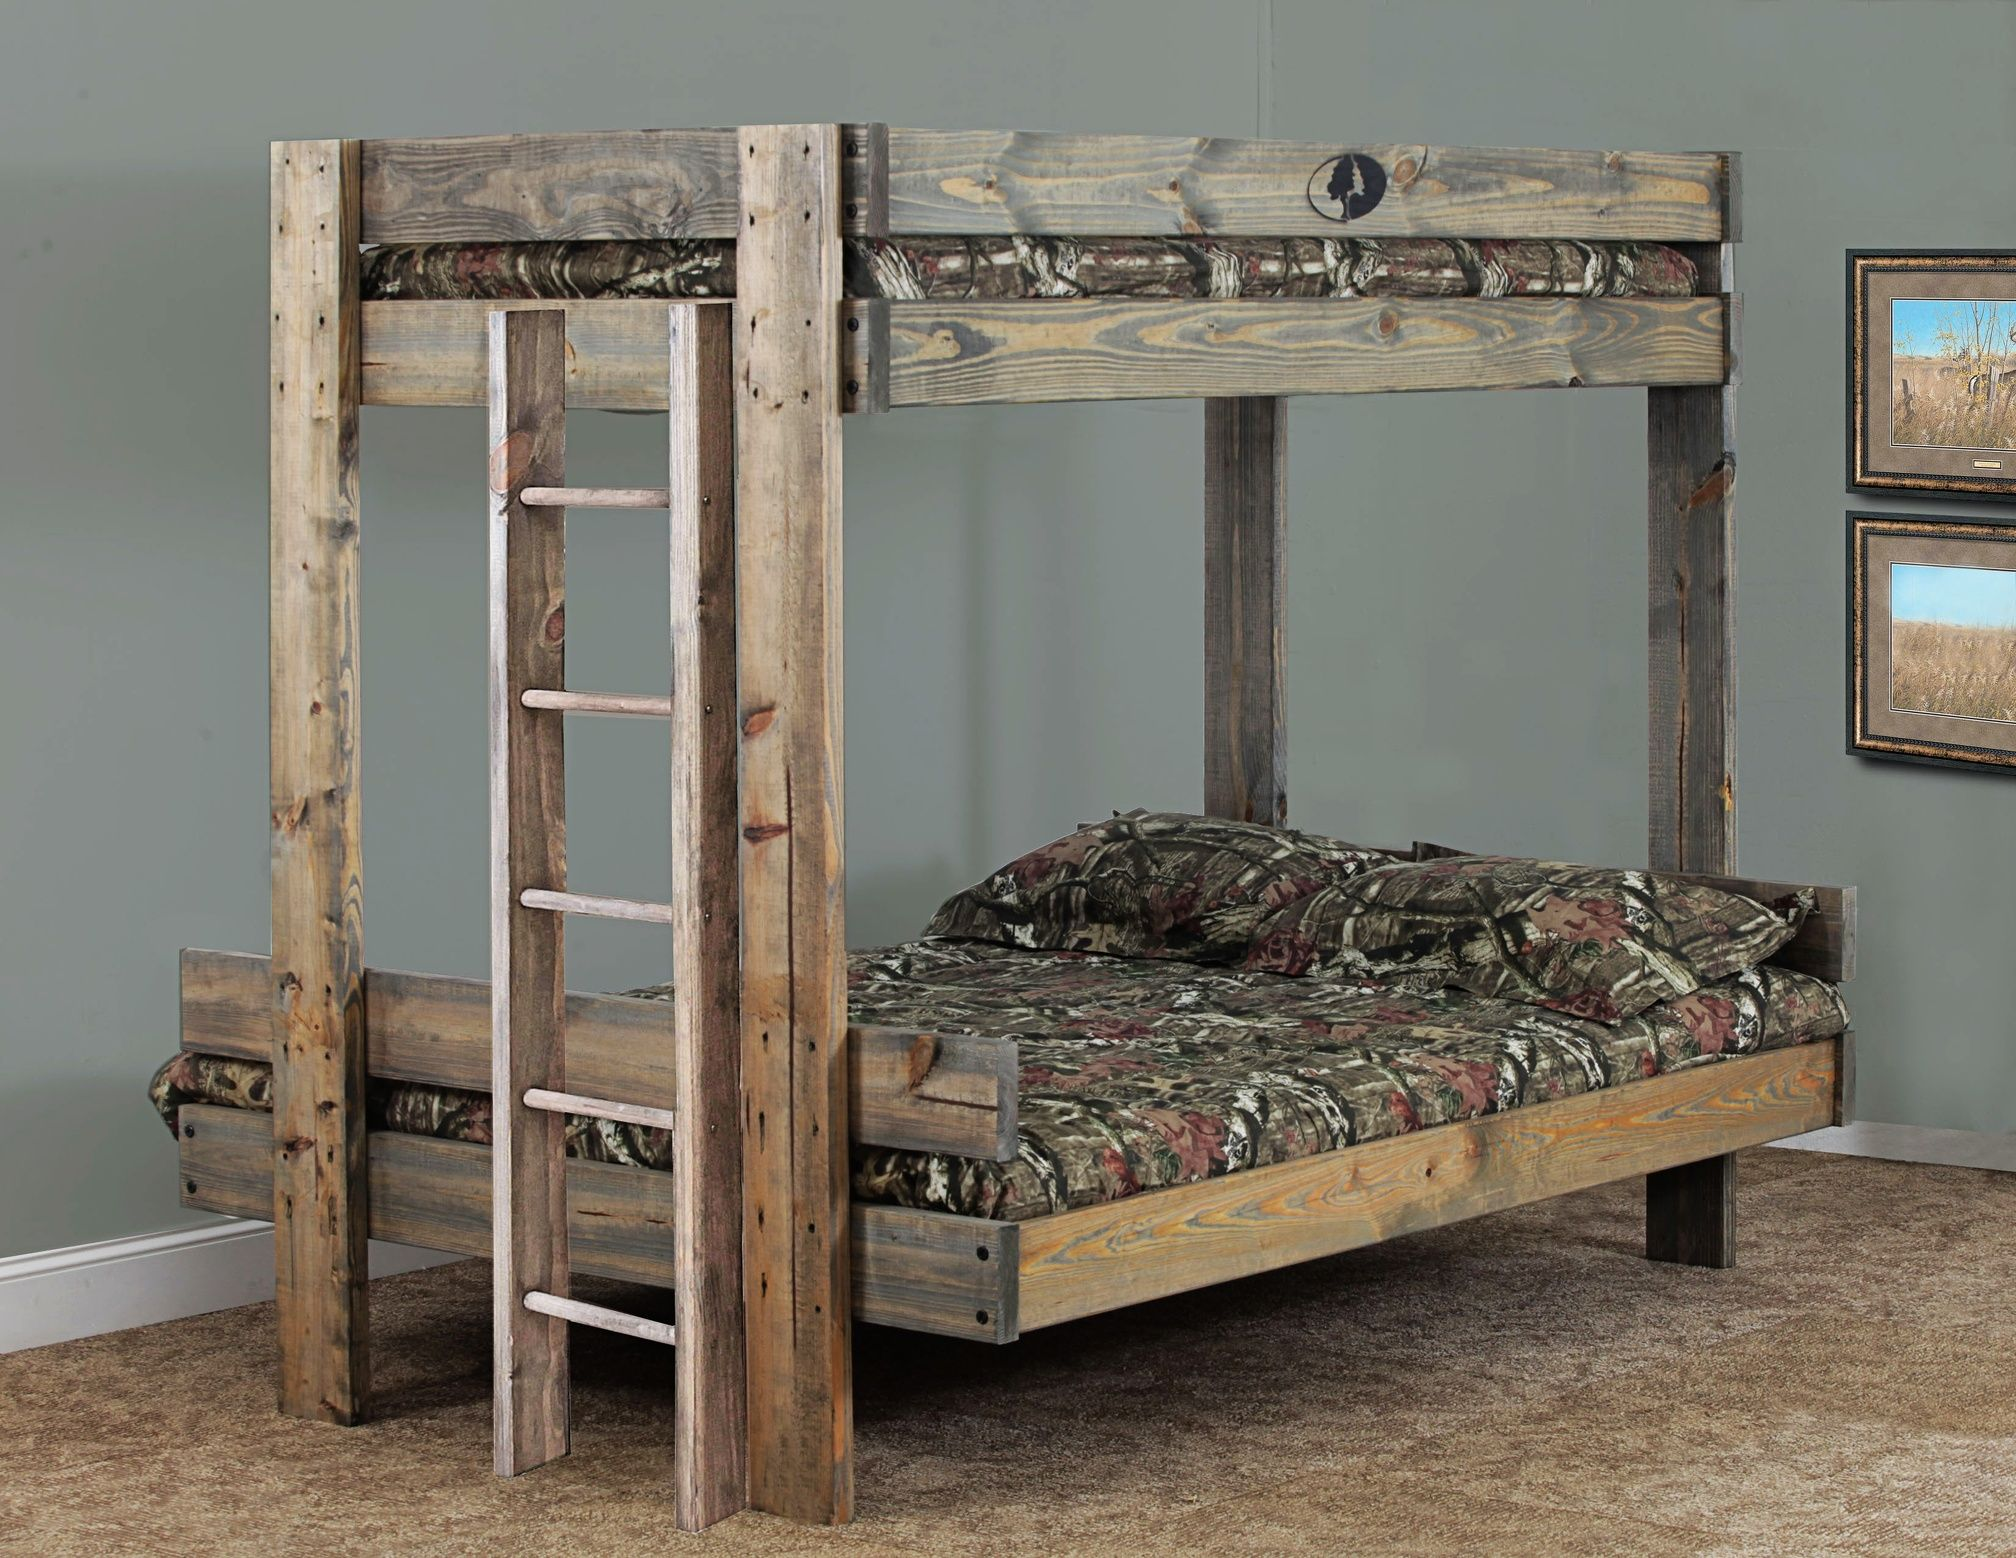 Mossy Oak Bed from Simply Bunk Beds www sbbed comMossy Oak Bed from Simply Bunk Beds www sbbed com   Nativ Living  . Mossy Oak Bedroom Accessories. Home Design Ideas